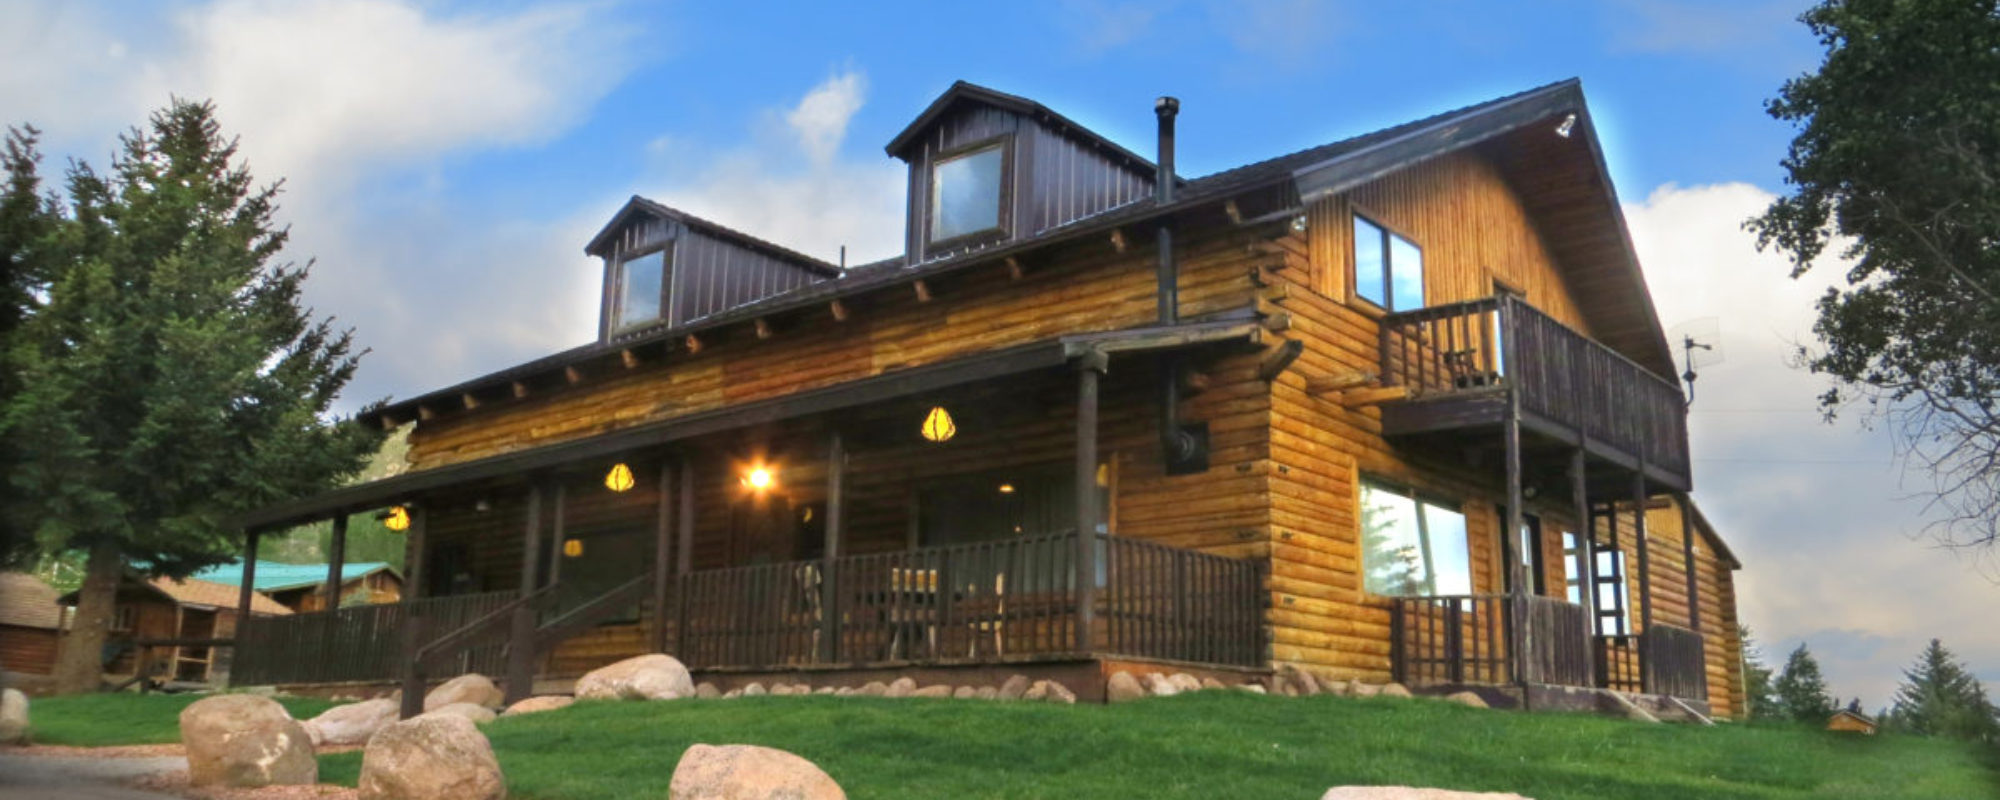 The Pine Valley Lodge